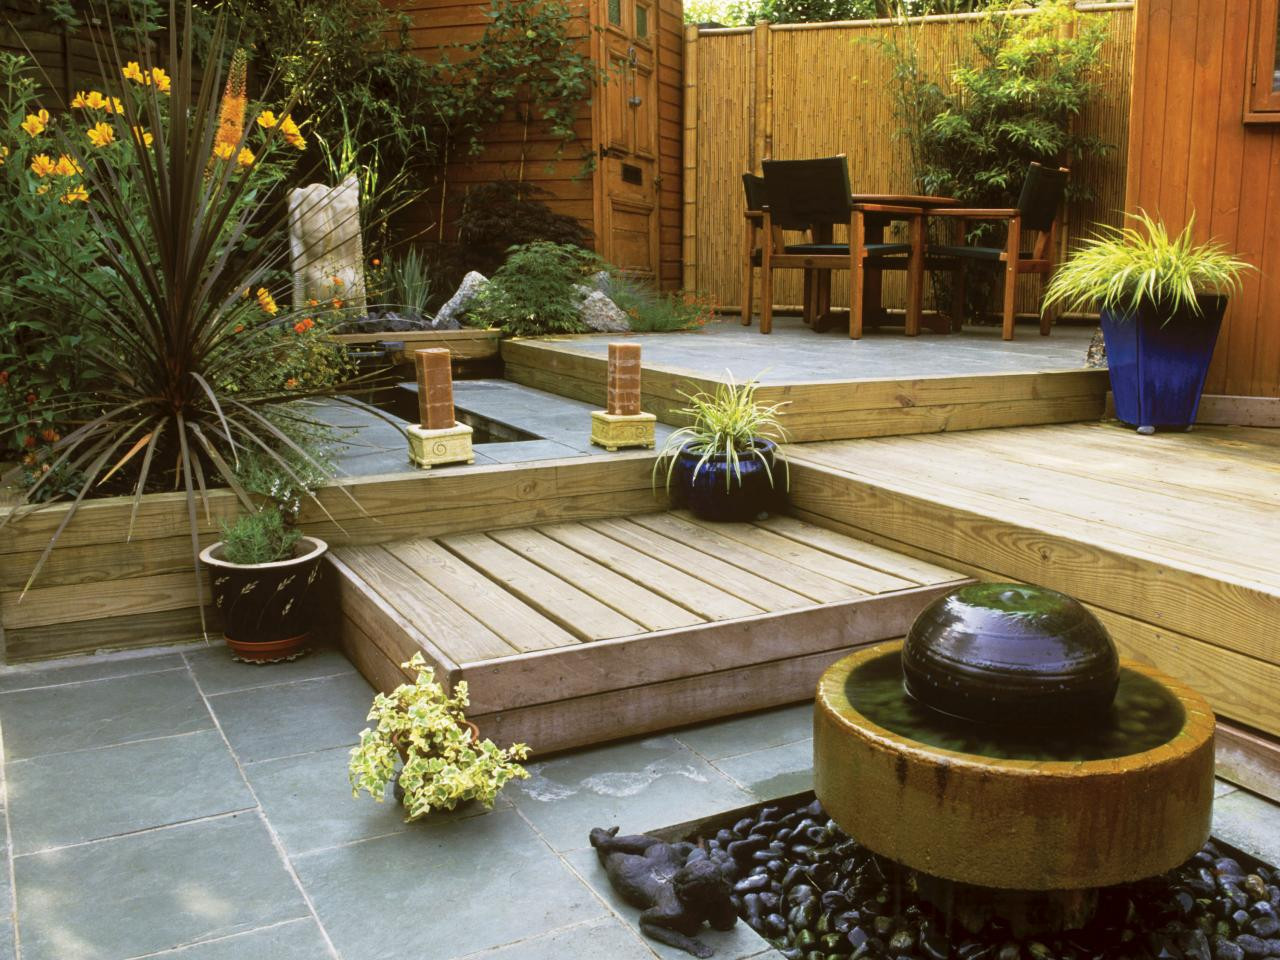 Best ideas about Small Backyard Design . Save or Pin Small Backyard Ideas with or without Grass Traba Homes Now.